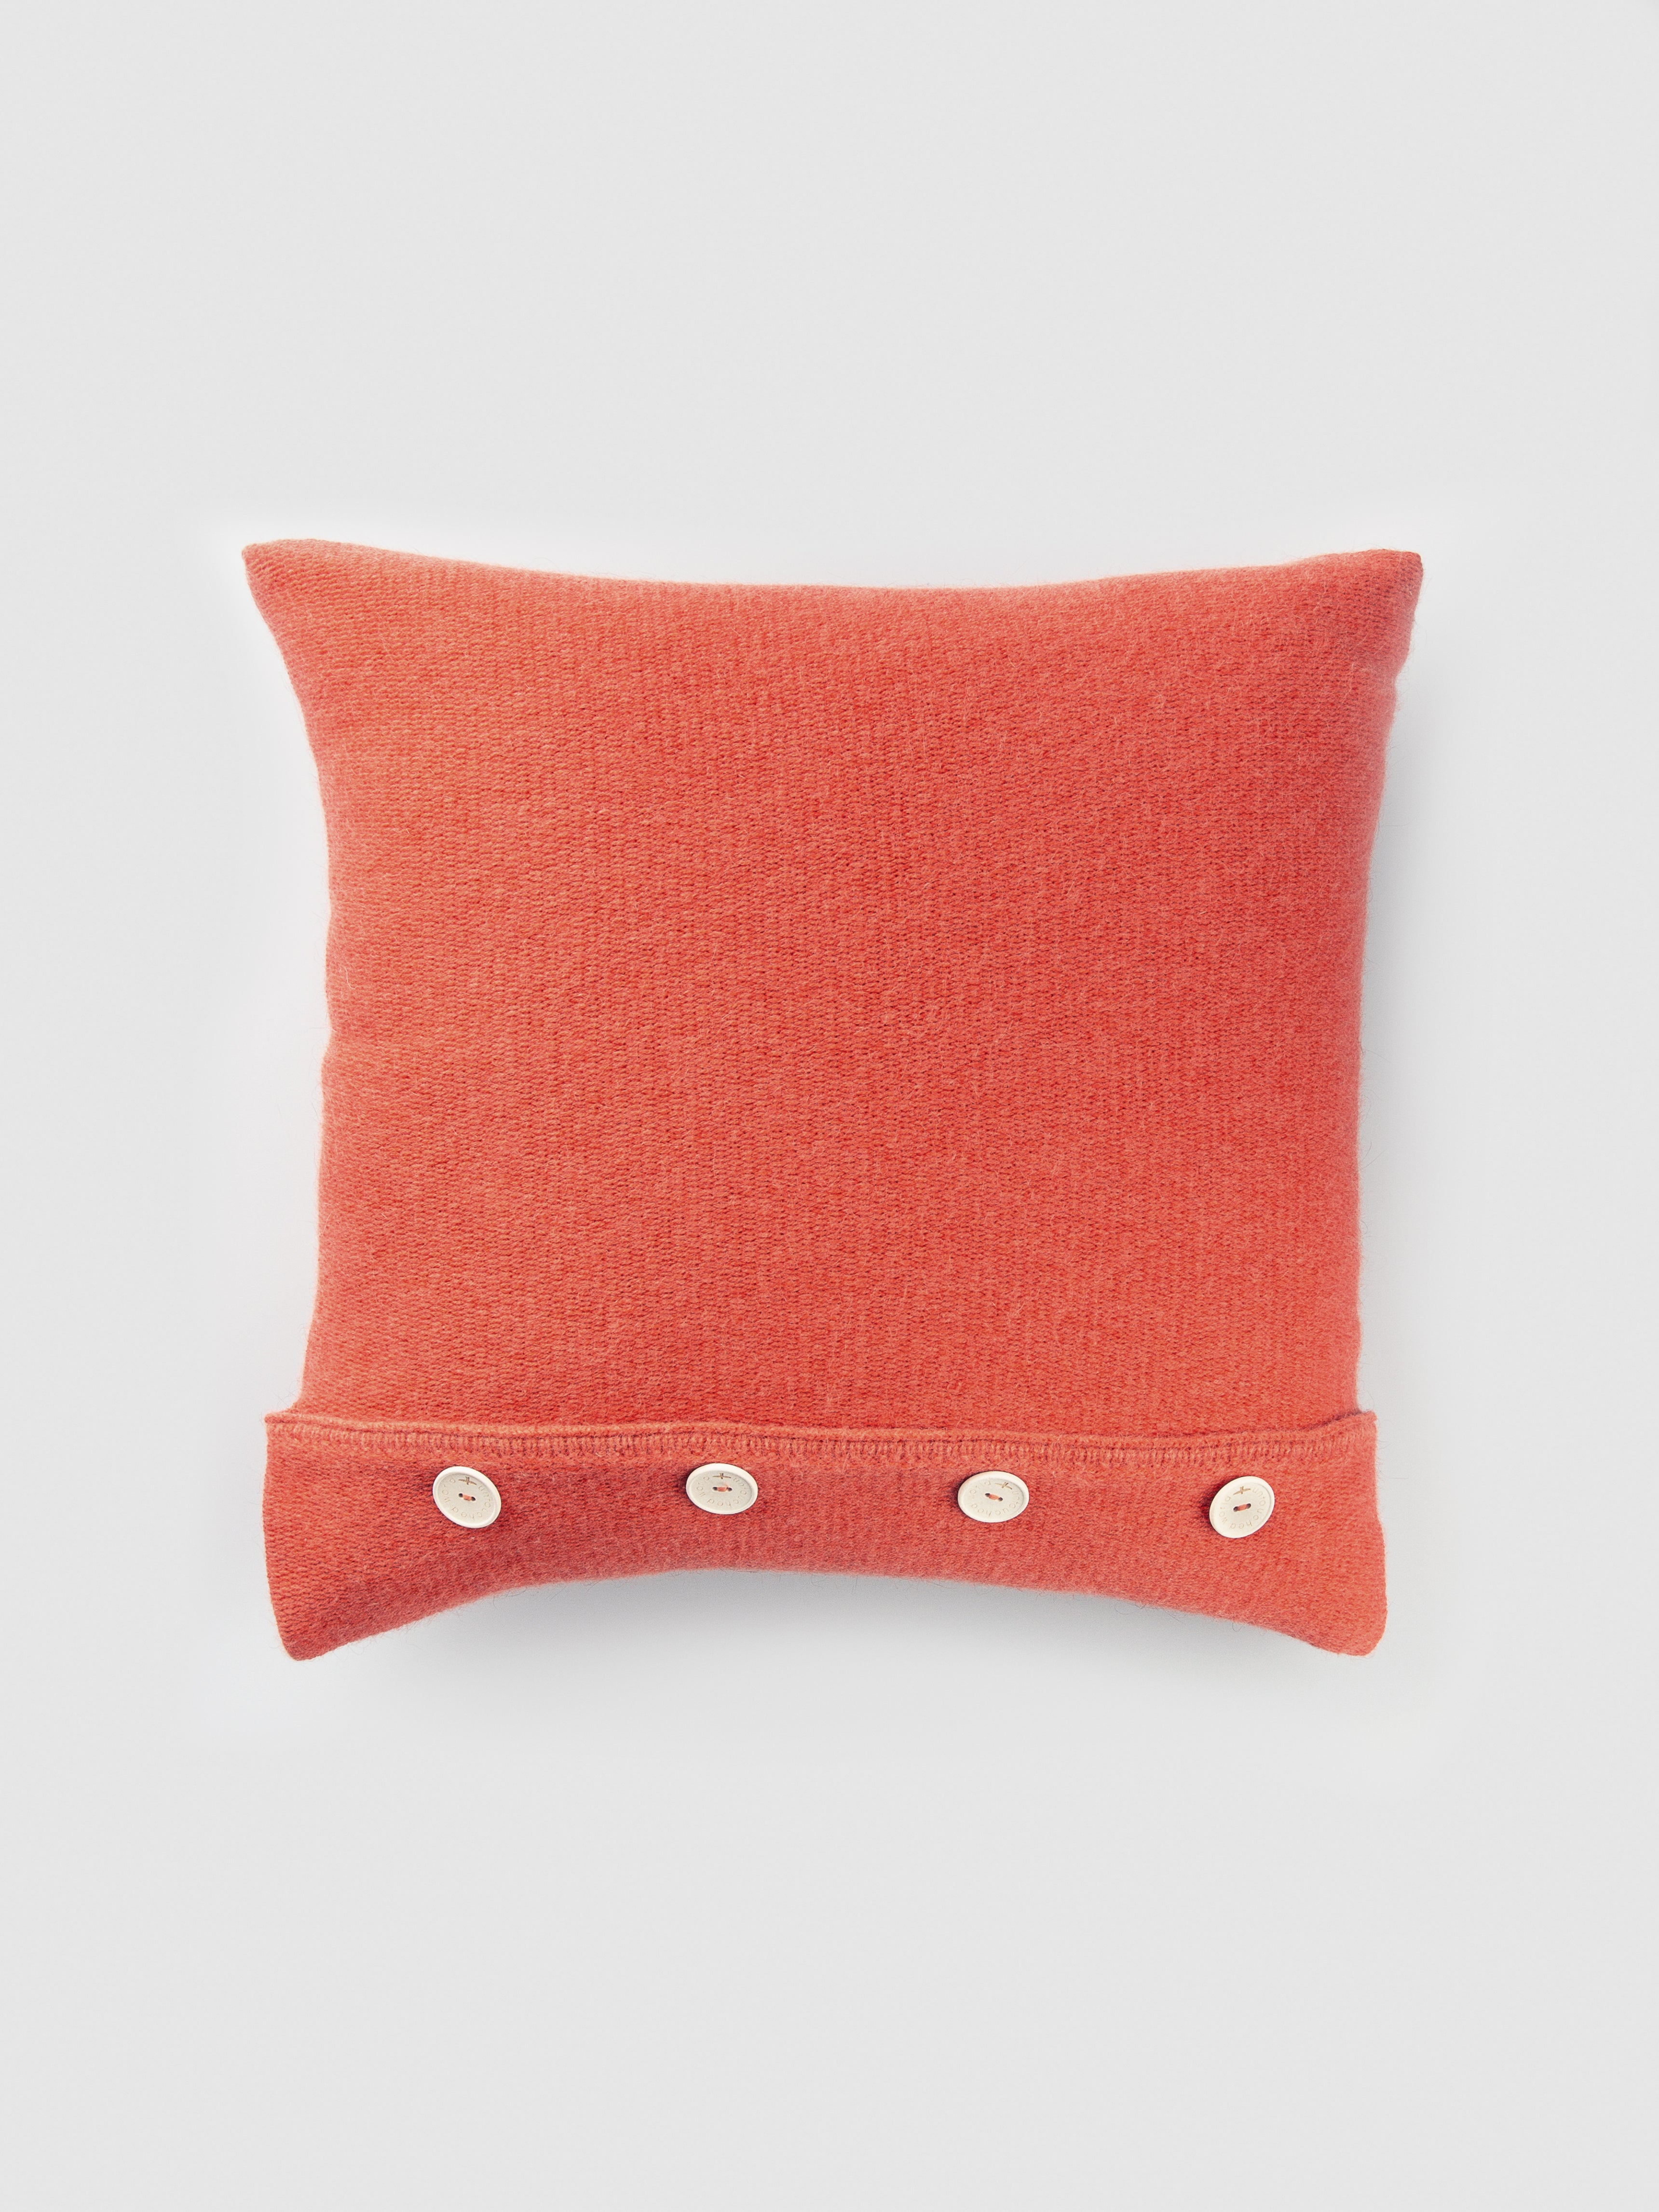 UNTOUCHED WORLD KNIT CUSHION